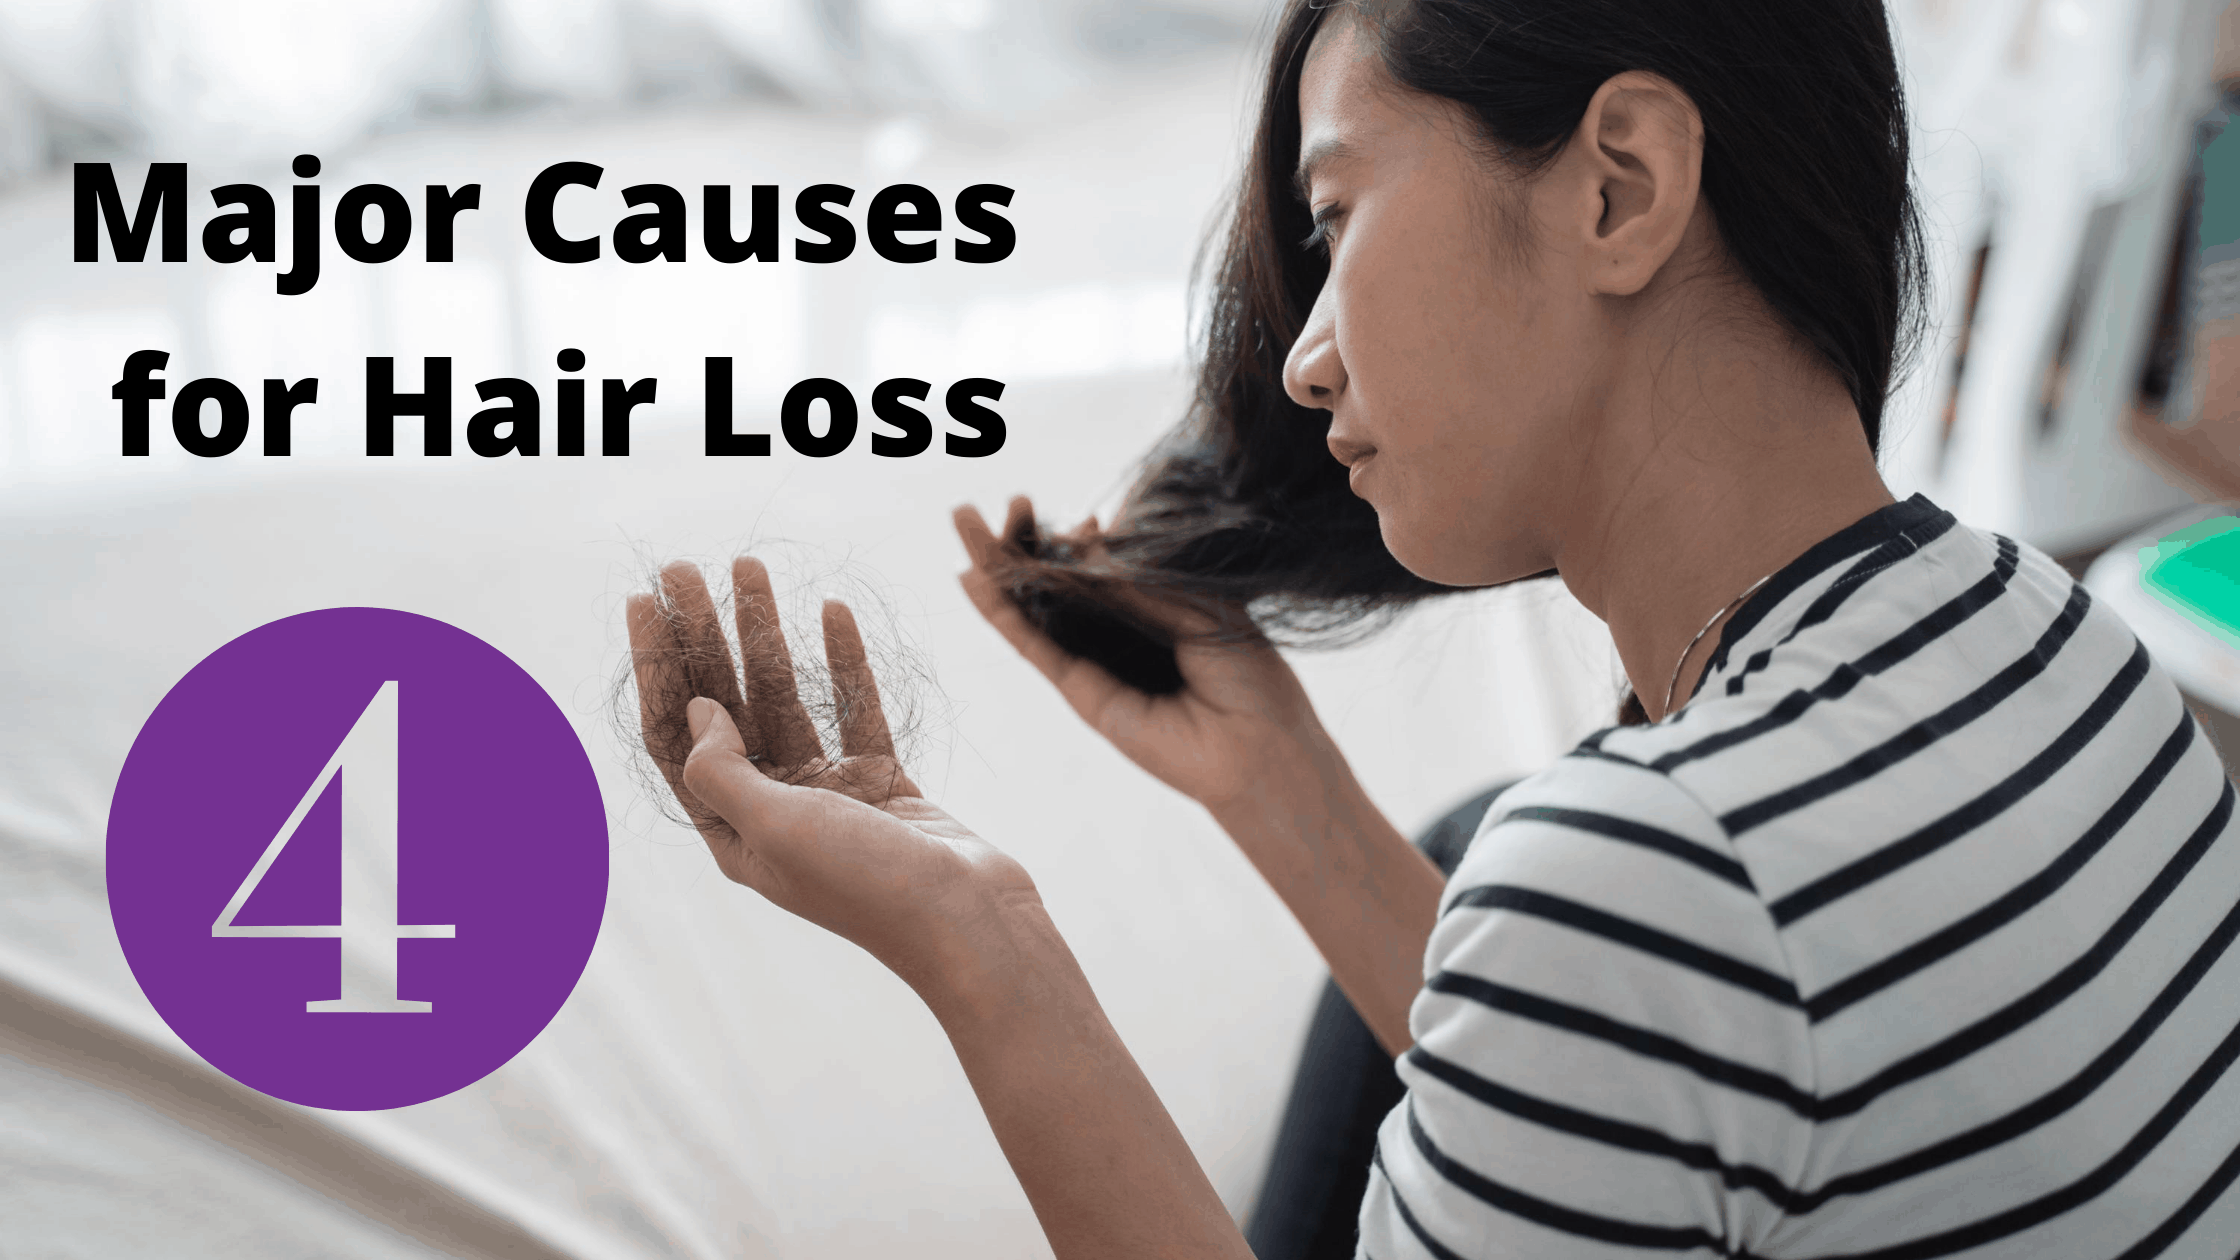 Major Causes for Hair Loss